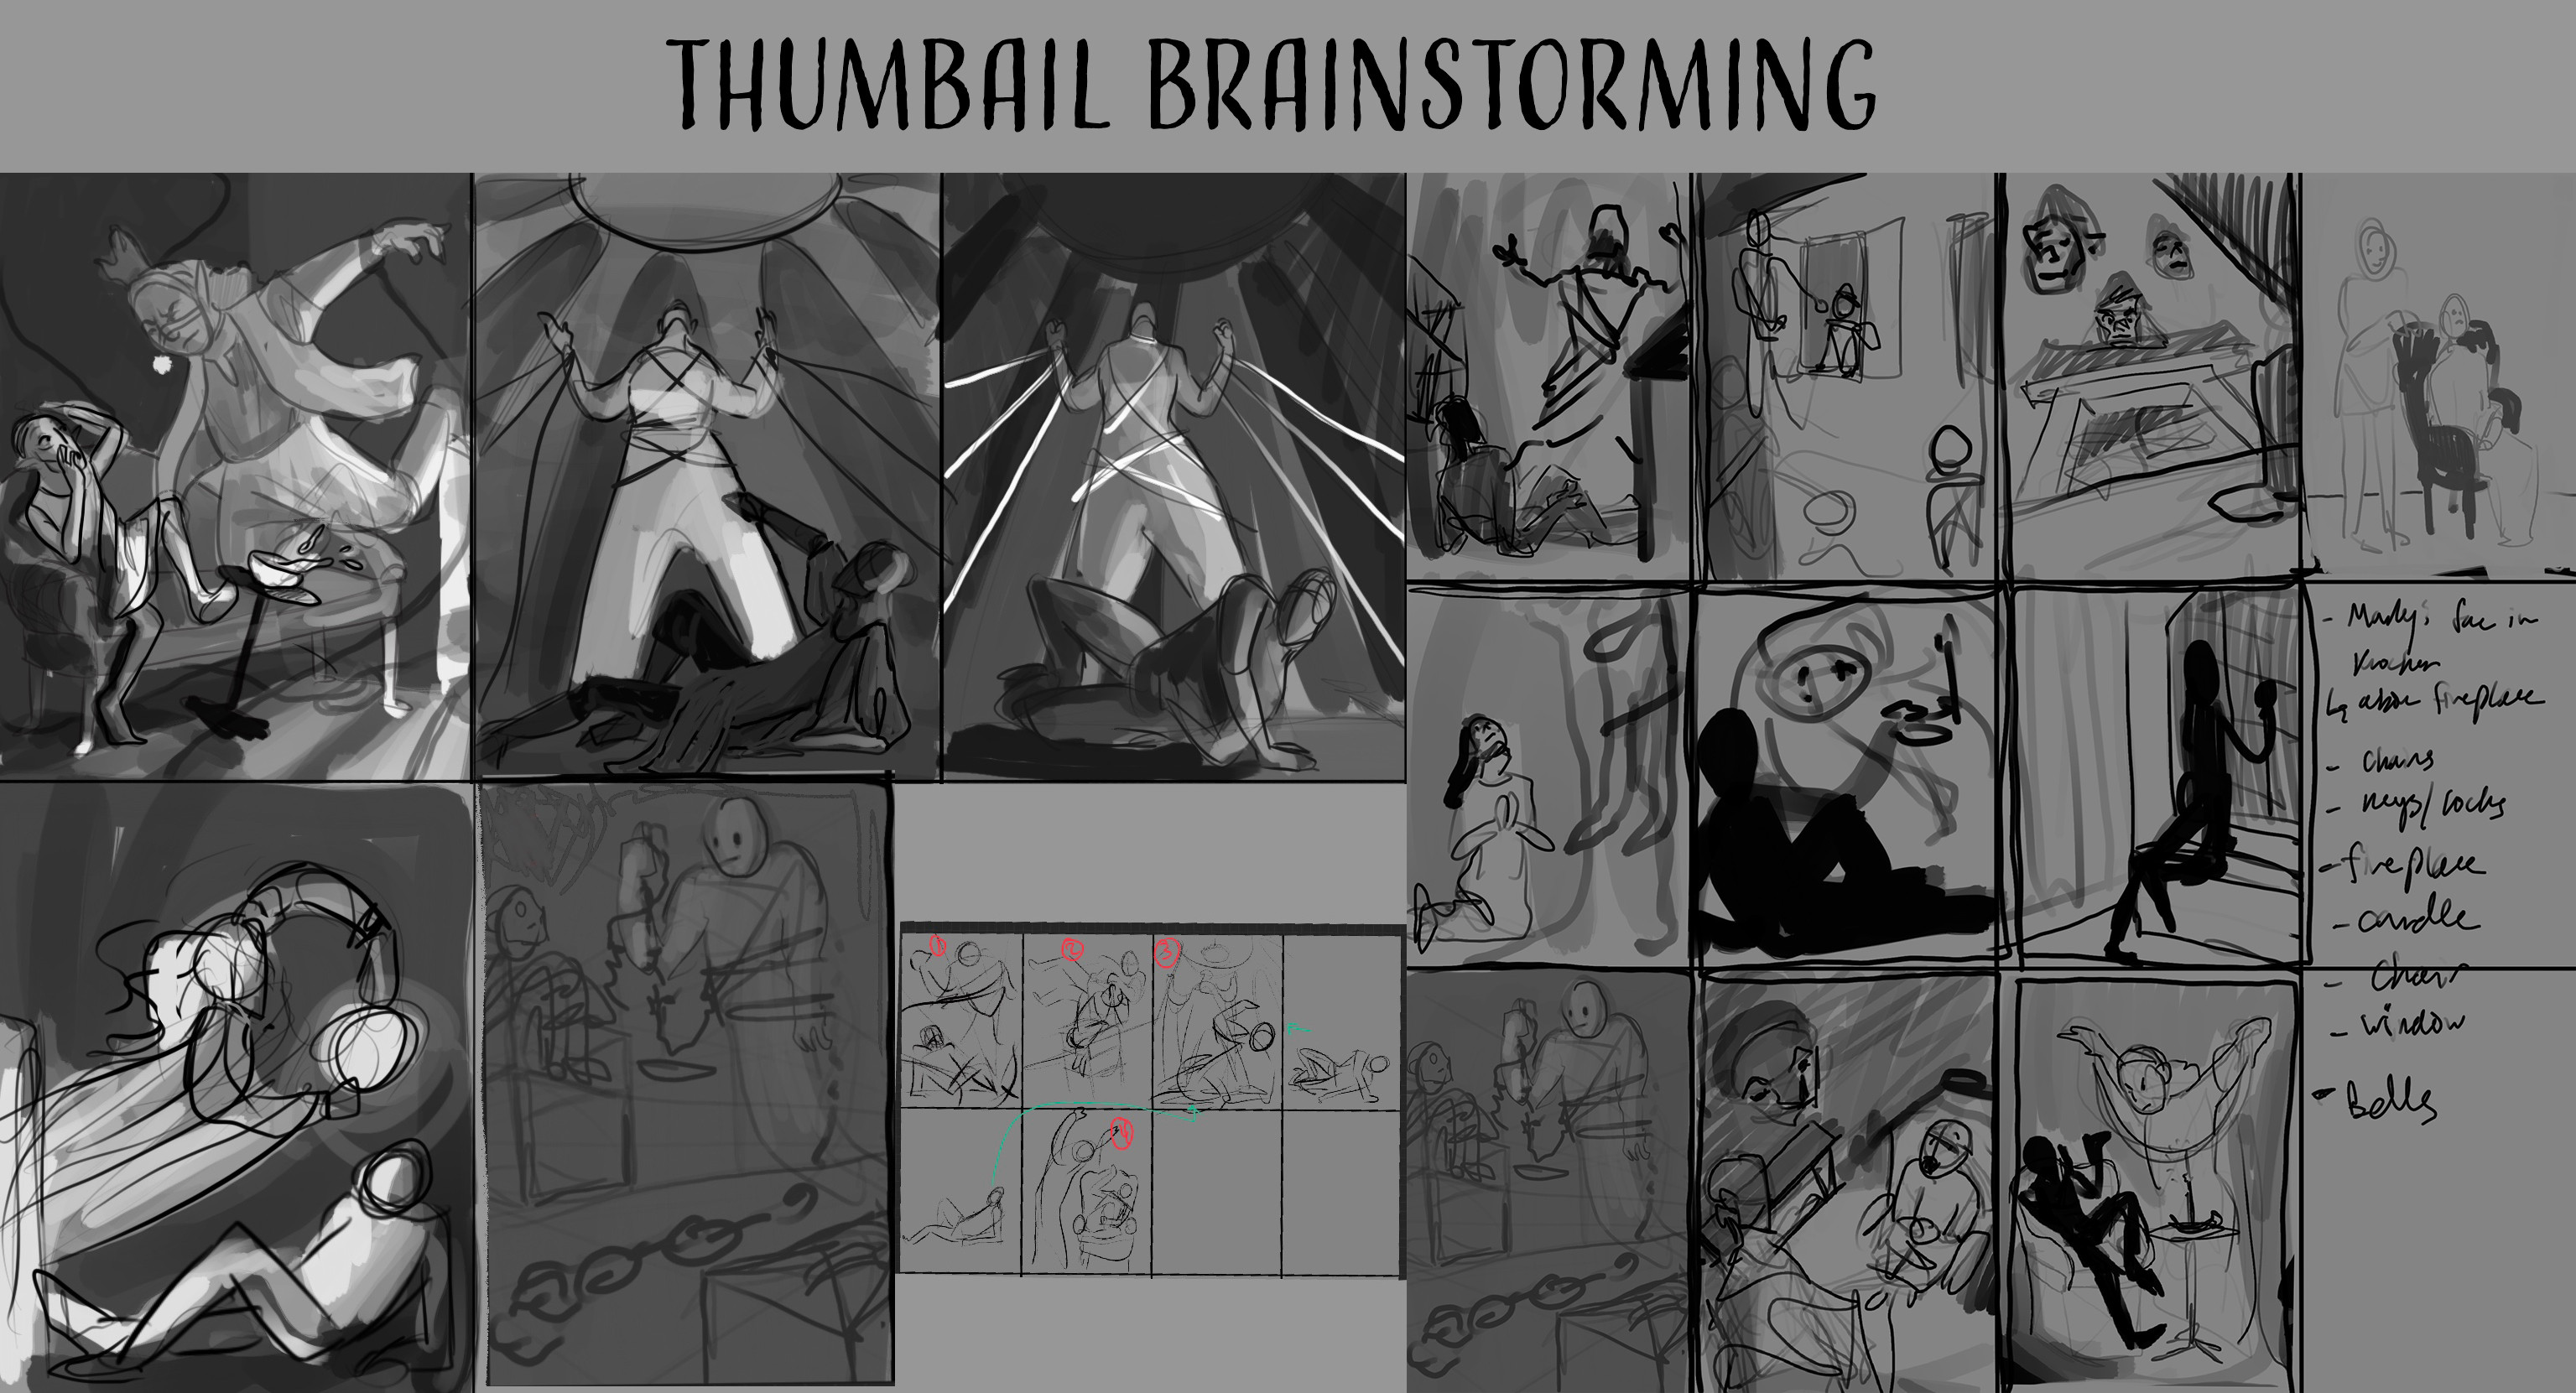 I went through a long process of thumbnail brainstorming! Here's a small selection of the ideas I had bouncing around for this project. I ended up going with a combination of the idea in the top left and bottom right (completed in Procreate)